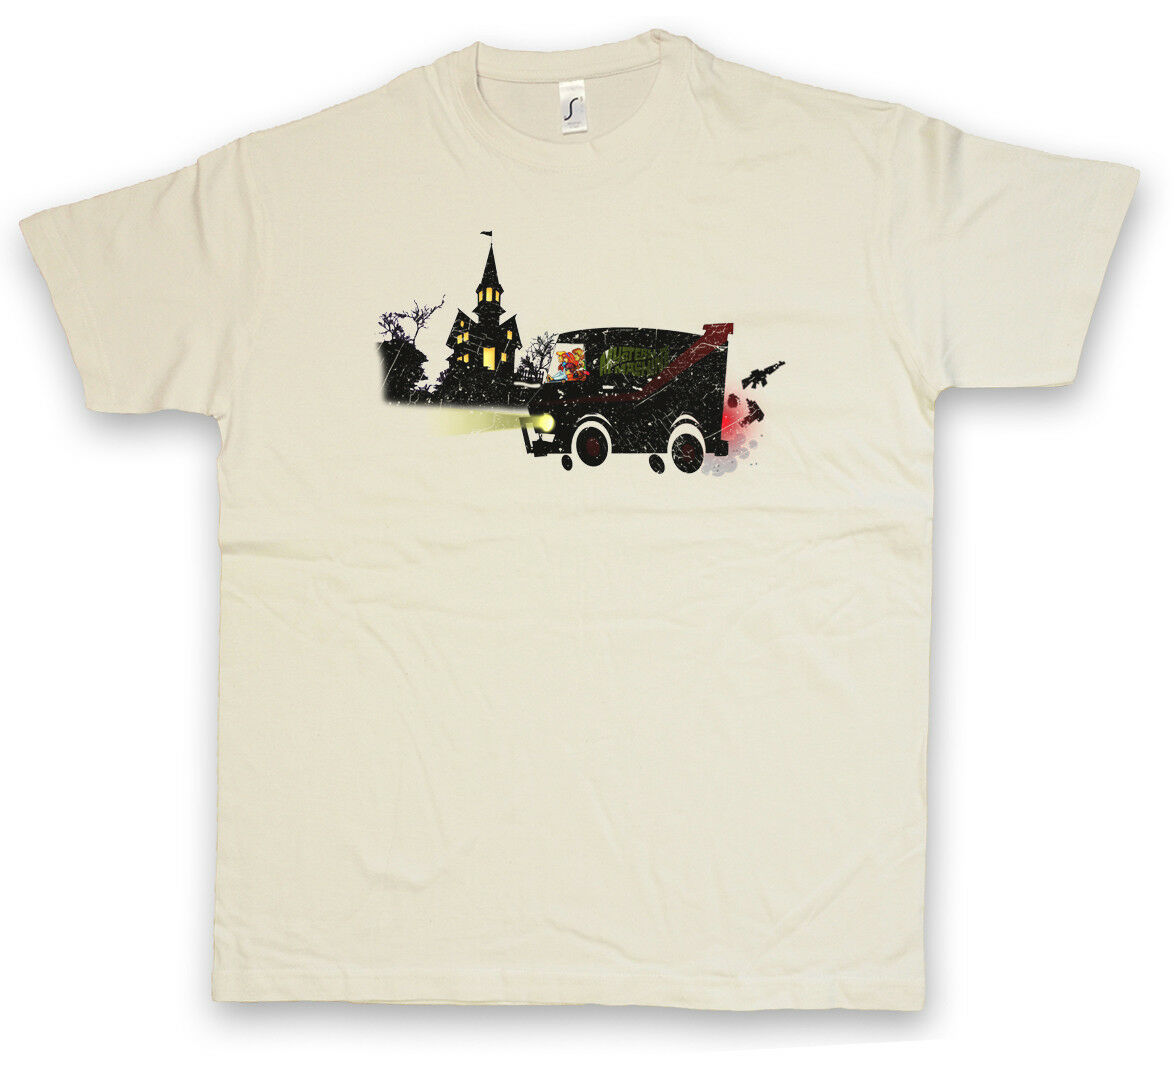 M-TEAM T-SHIRT Scooby A-Team Mystery Doo Machine Van Car TV Mr. T Series Shirt image